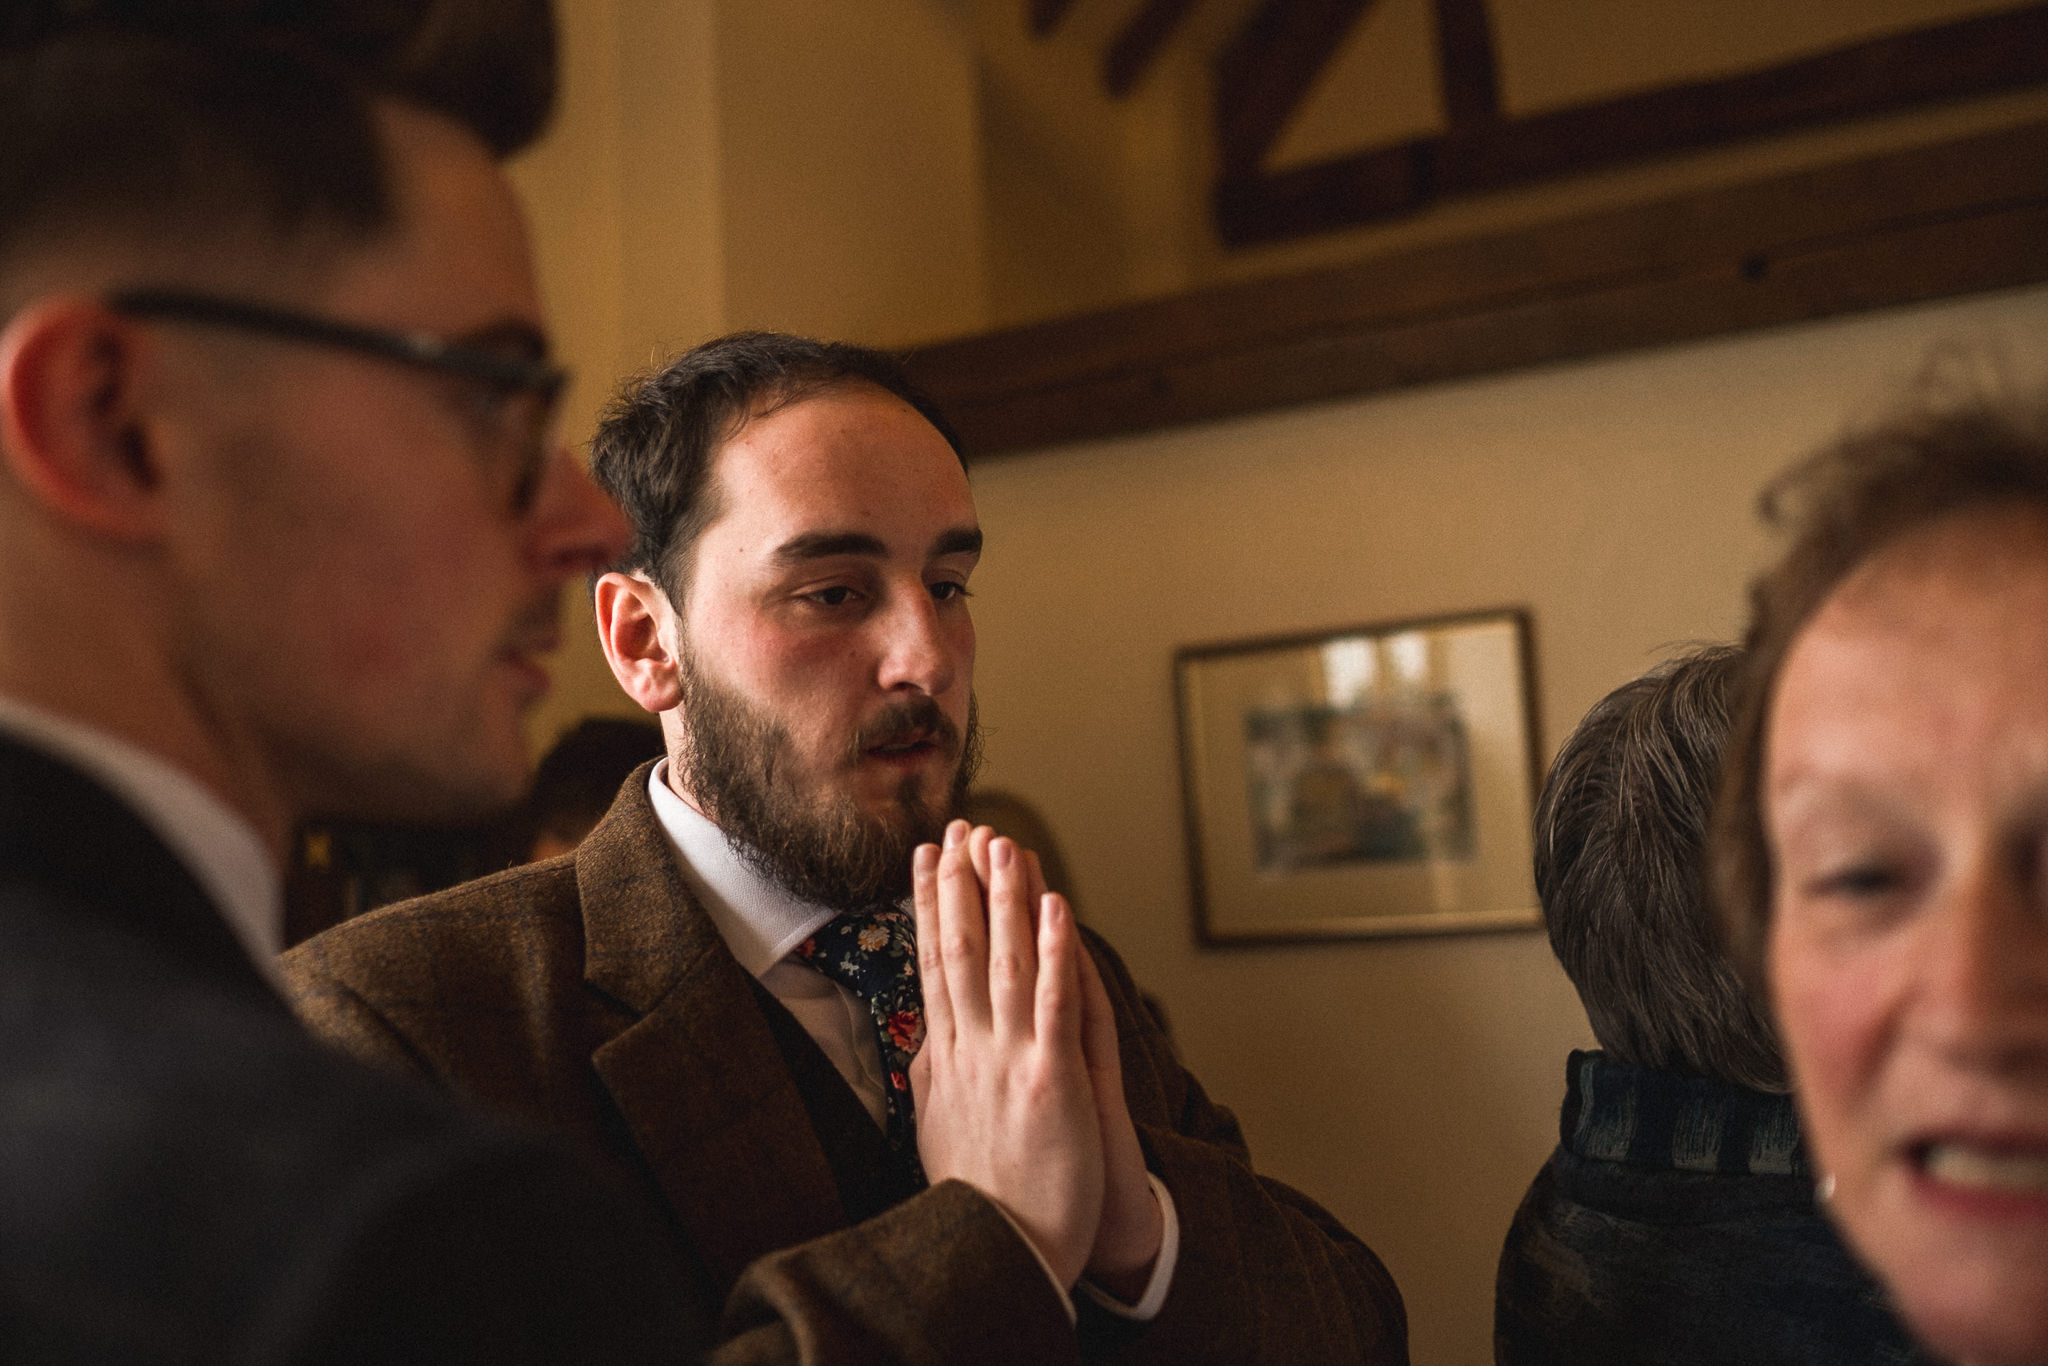 Alternative candid wedding photography of groom getting ready in style for wedding at Berts Barrow Farm